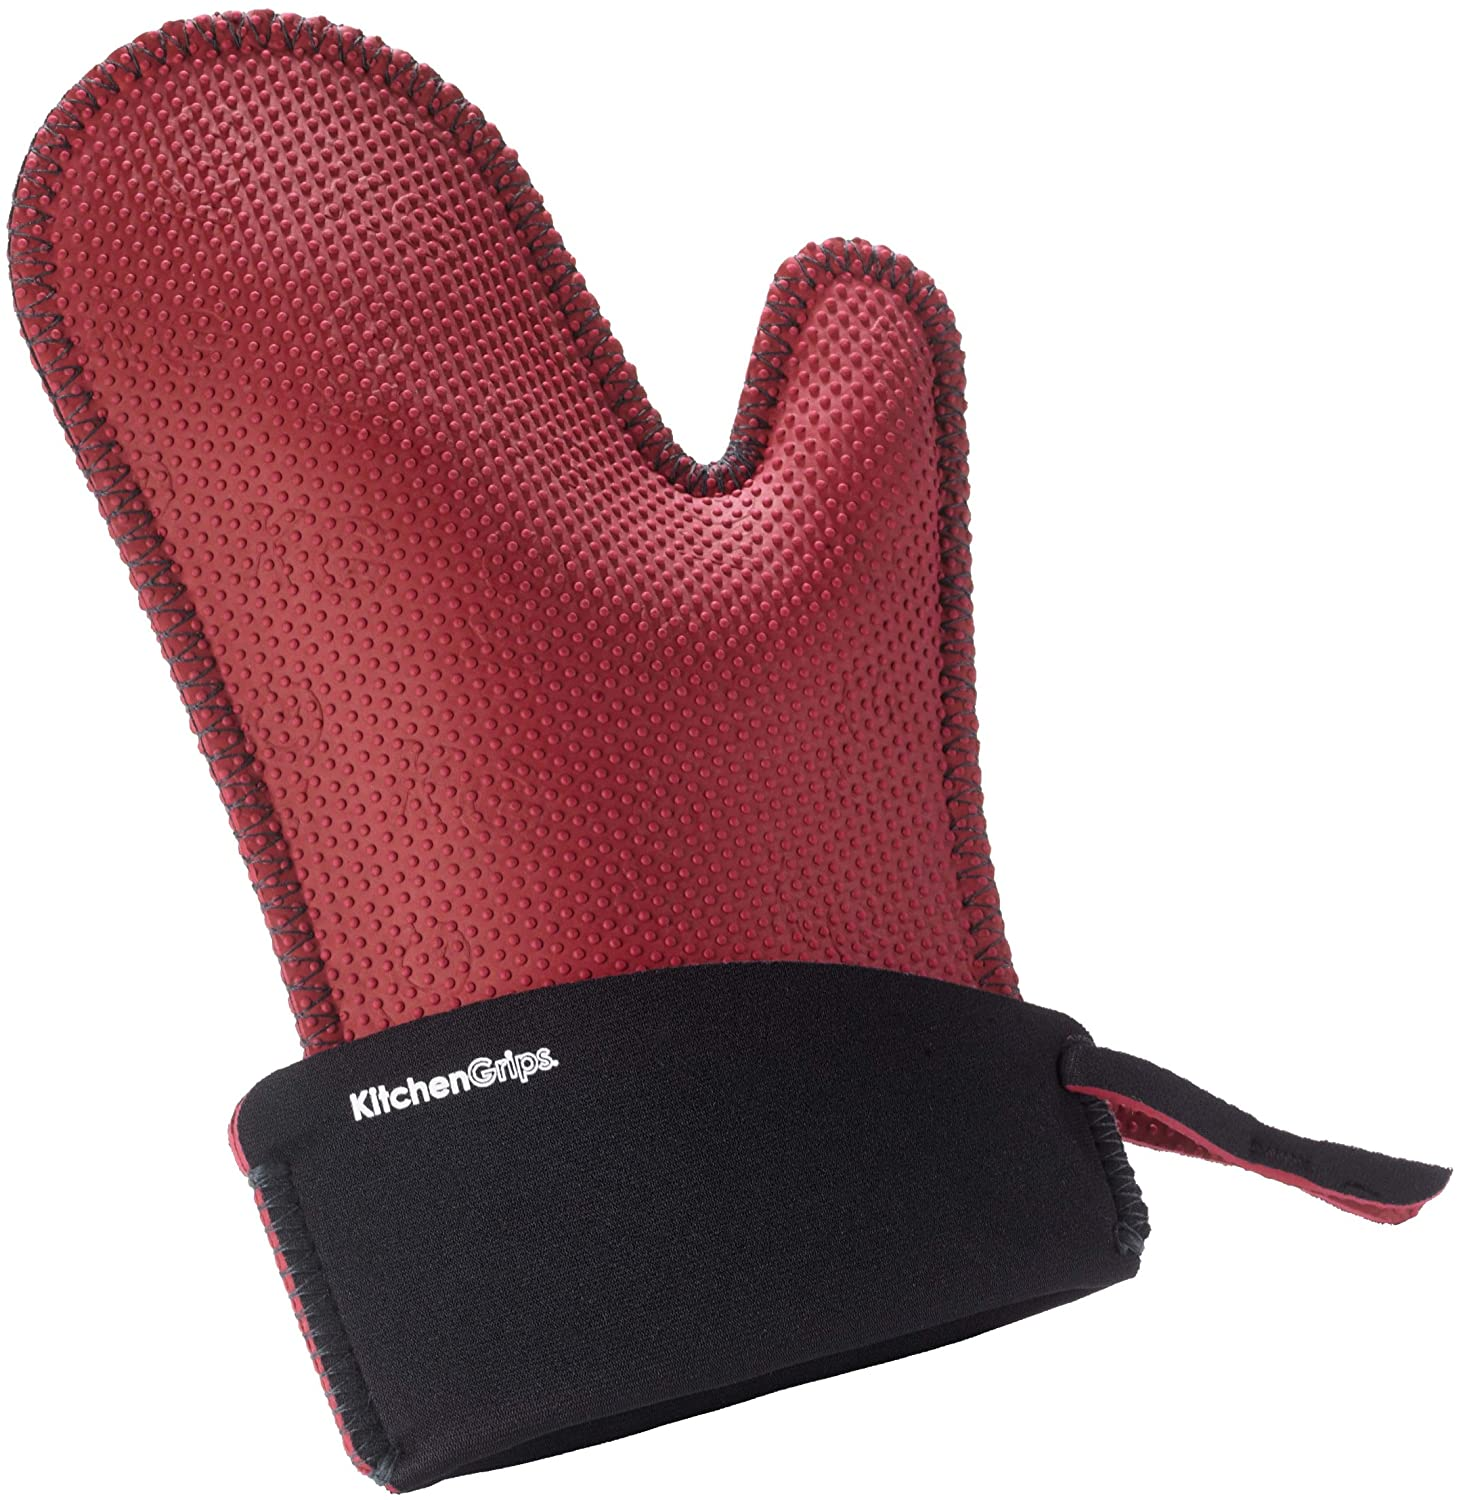 Kitchen Grips Chef's Mitt, Large, Red/Black